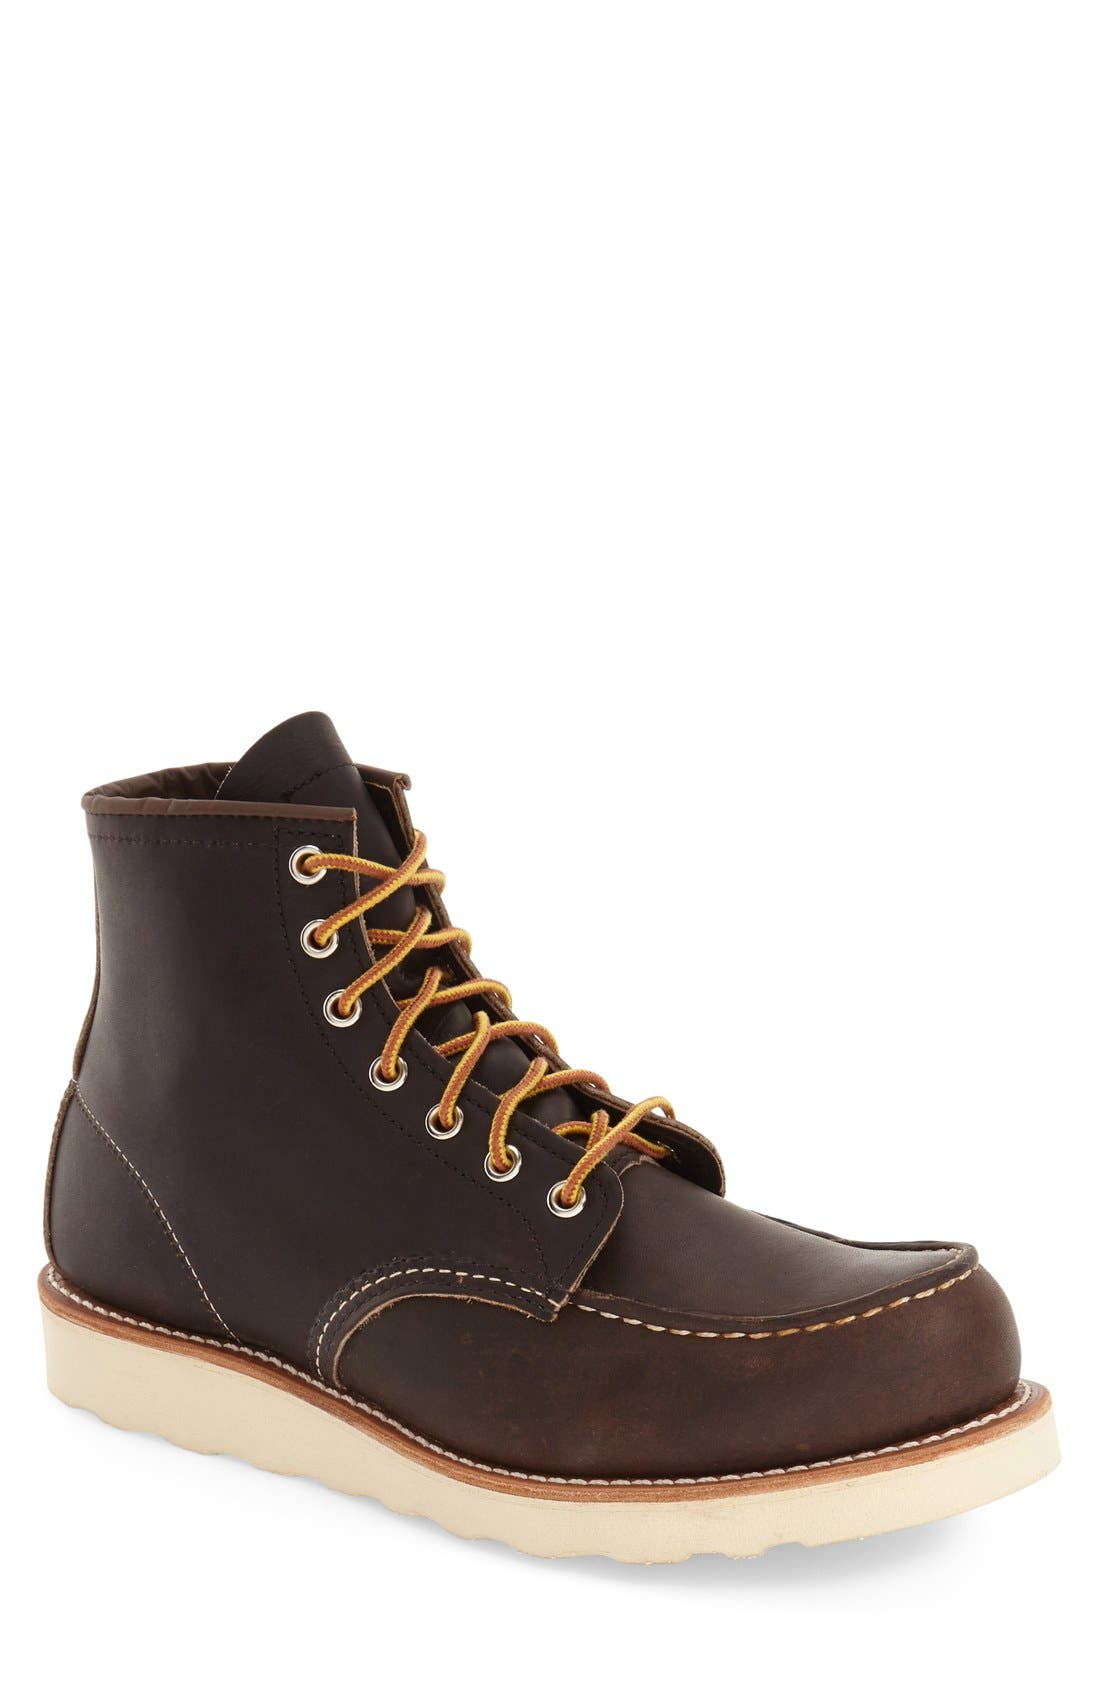 6 Inch Moc Toe Boot,                         Main,                         color, 200